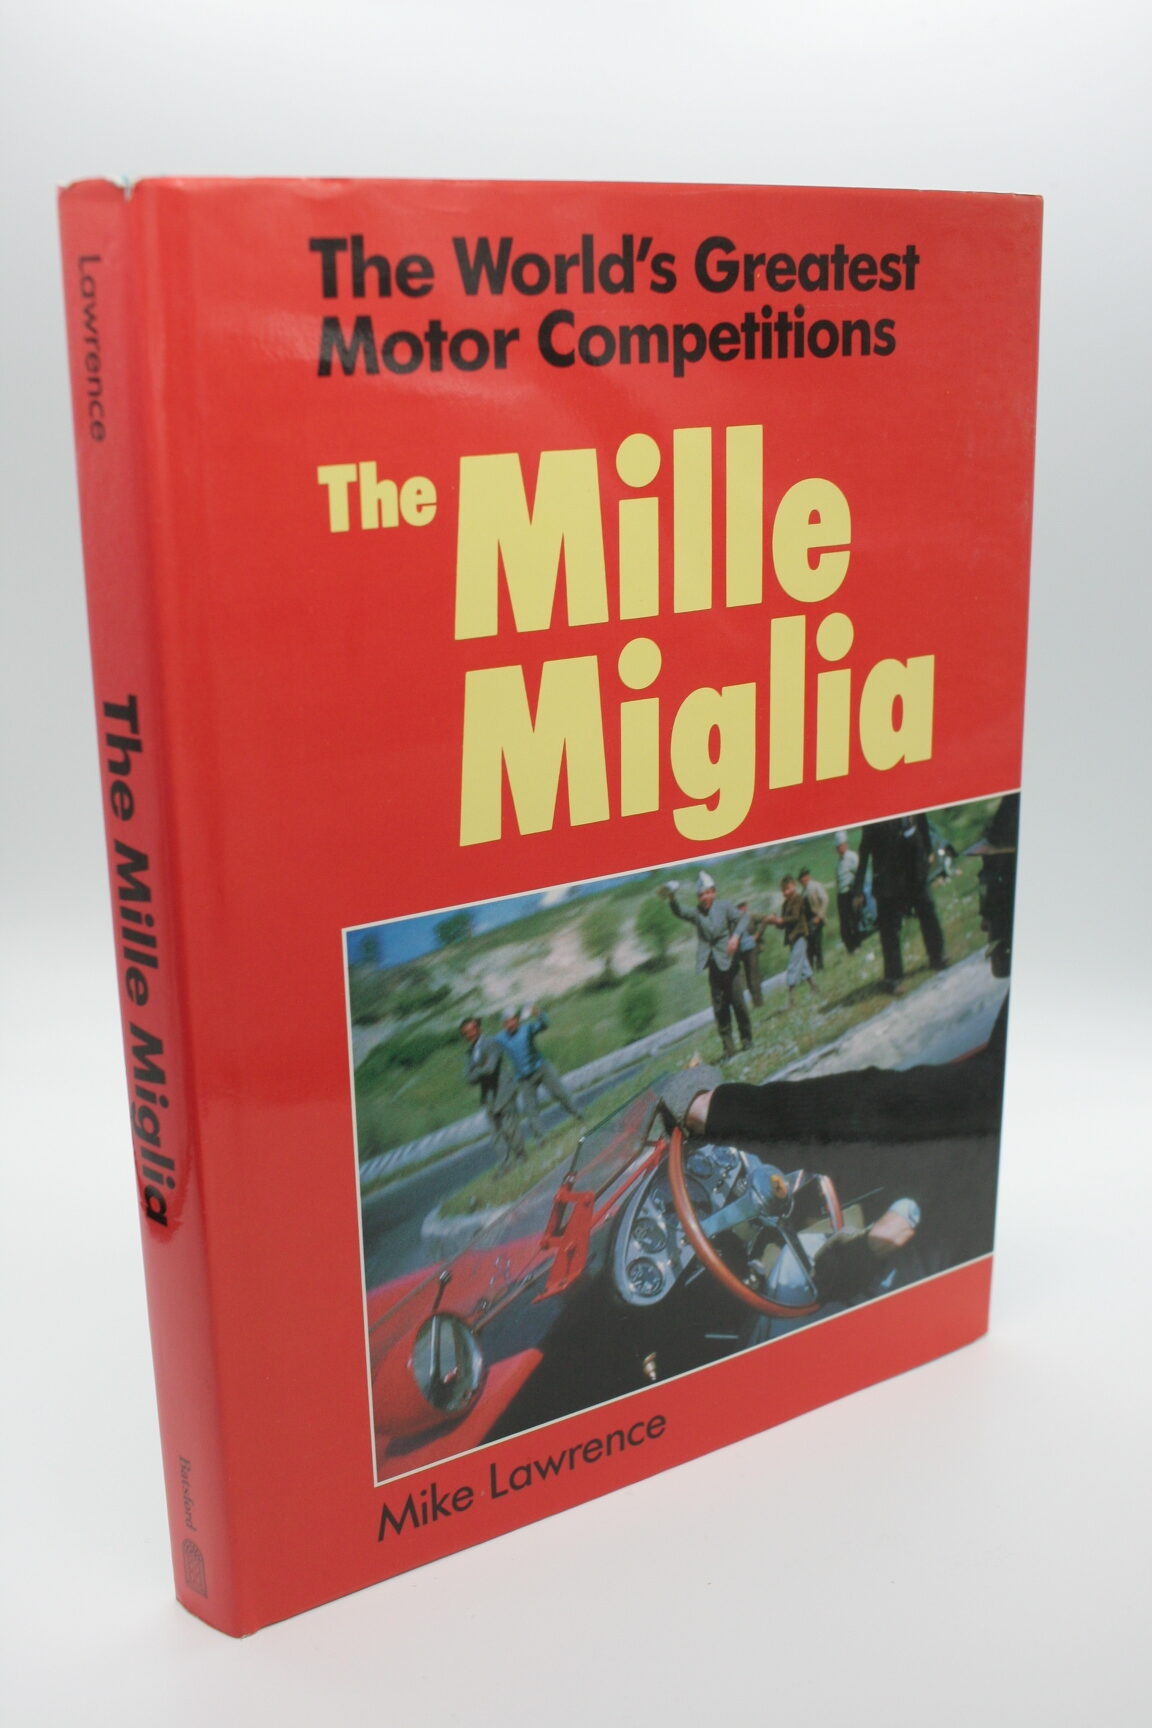 The Mille Miglia - Mike Lawrence